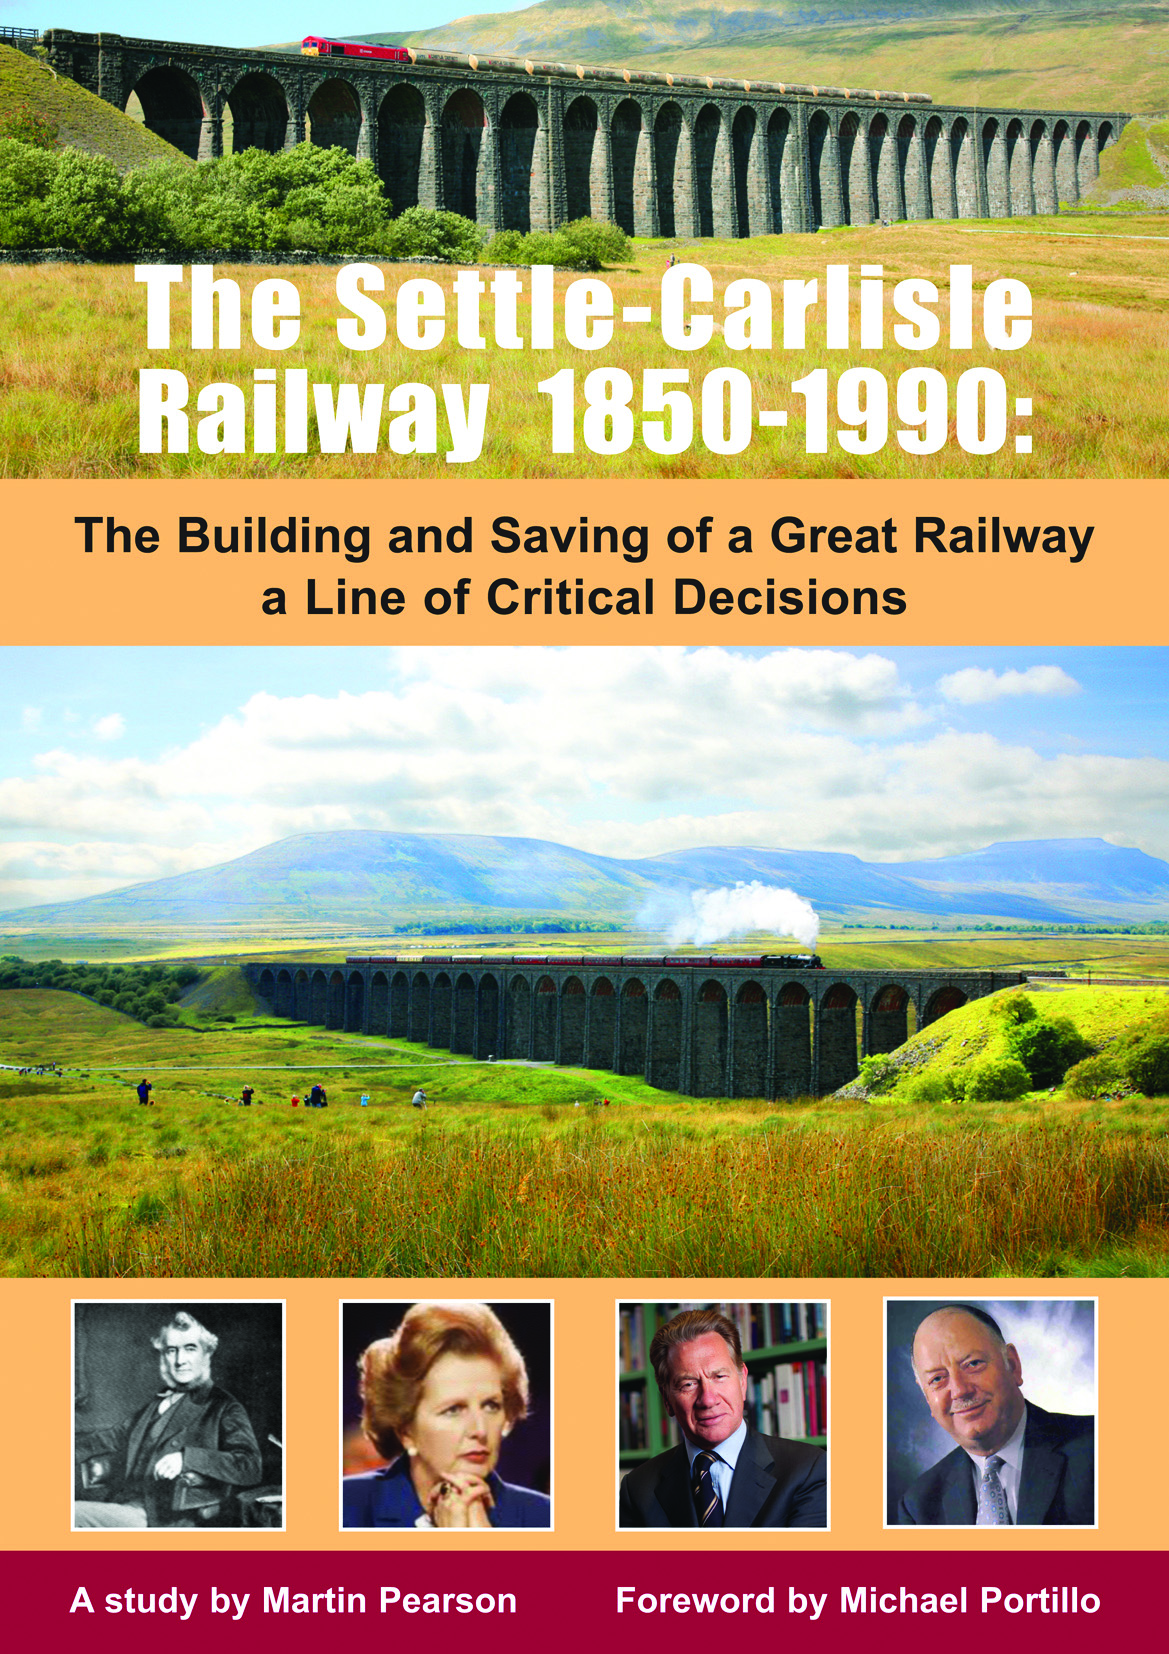 The Settle-Carlisle Railway 1850-1990 - The Building and Saving of a Great Railway - A Line of Critical Decisions